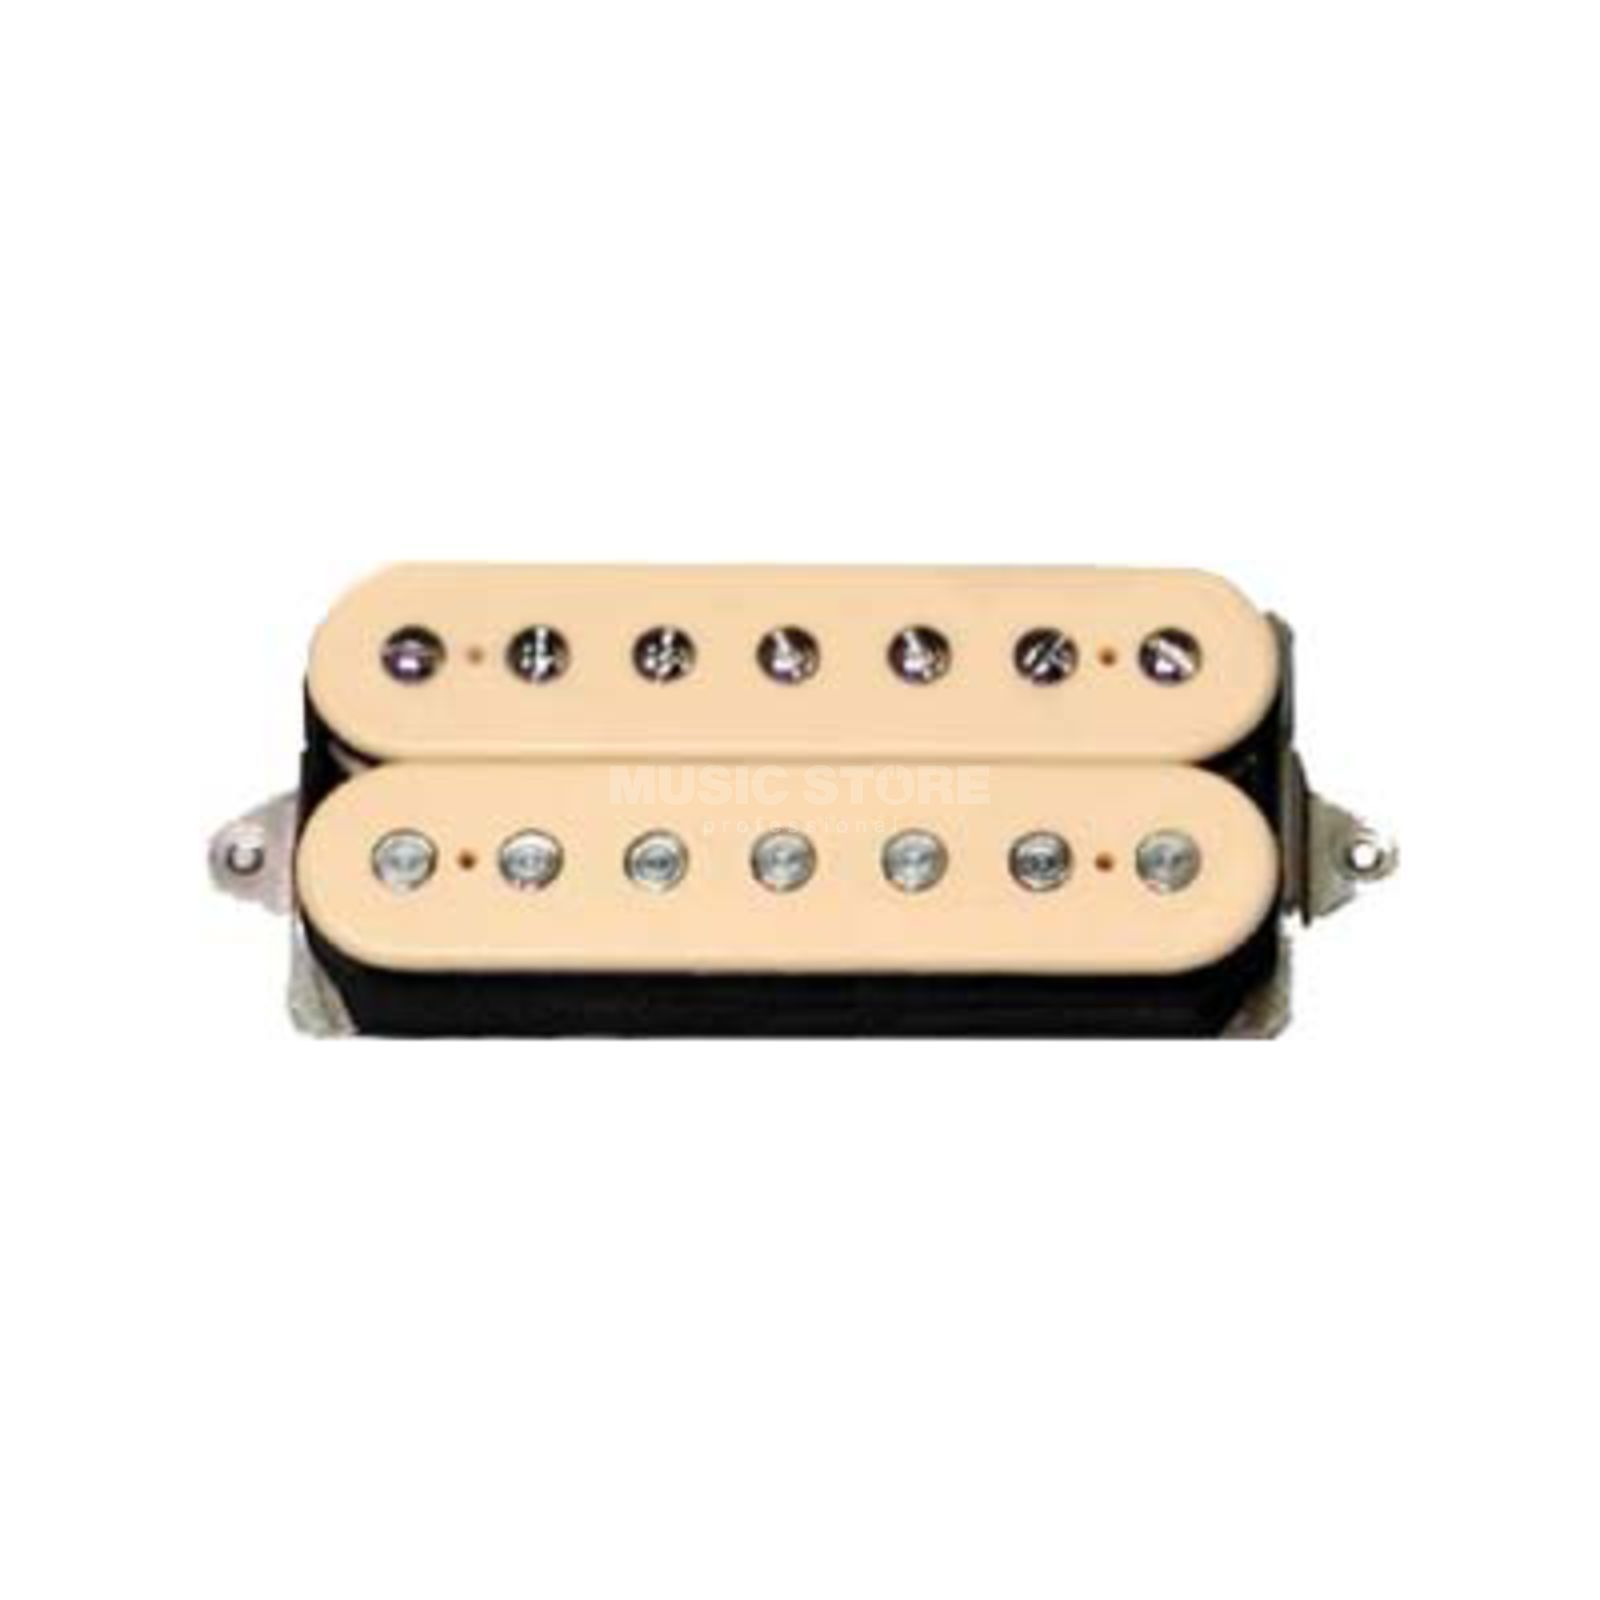 DiMarzio DP793 CR Air Norton 7 7-String Produktbillede